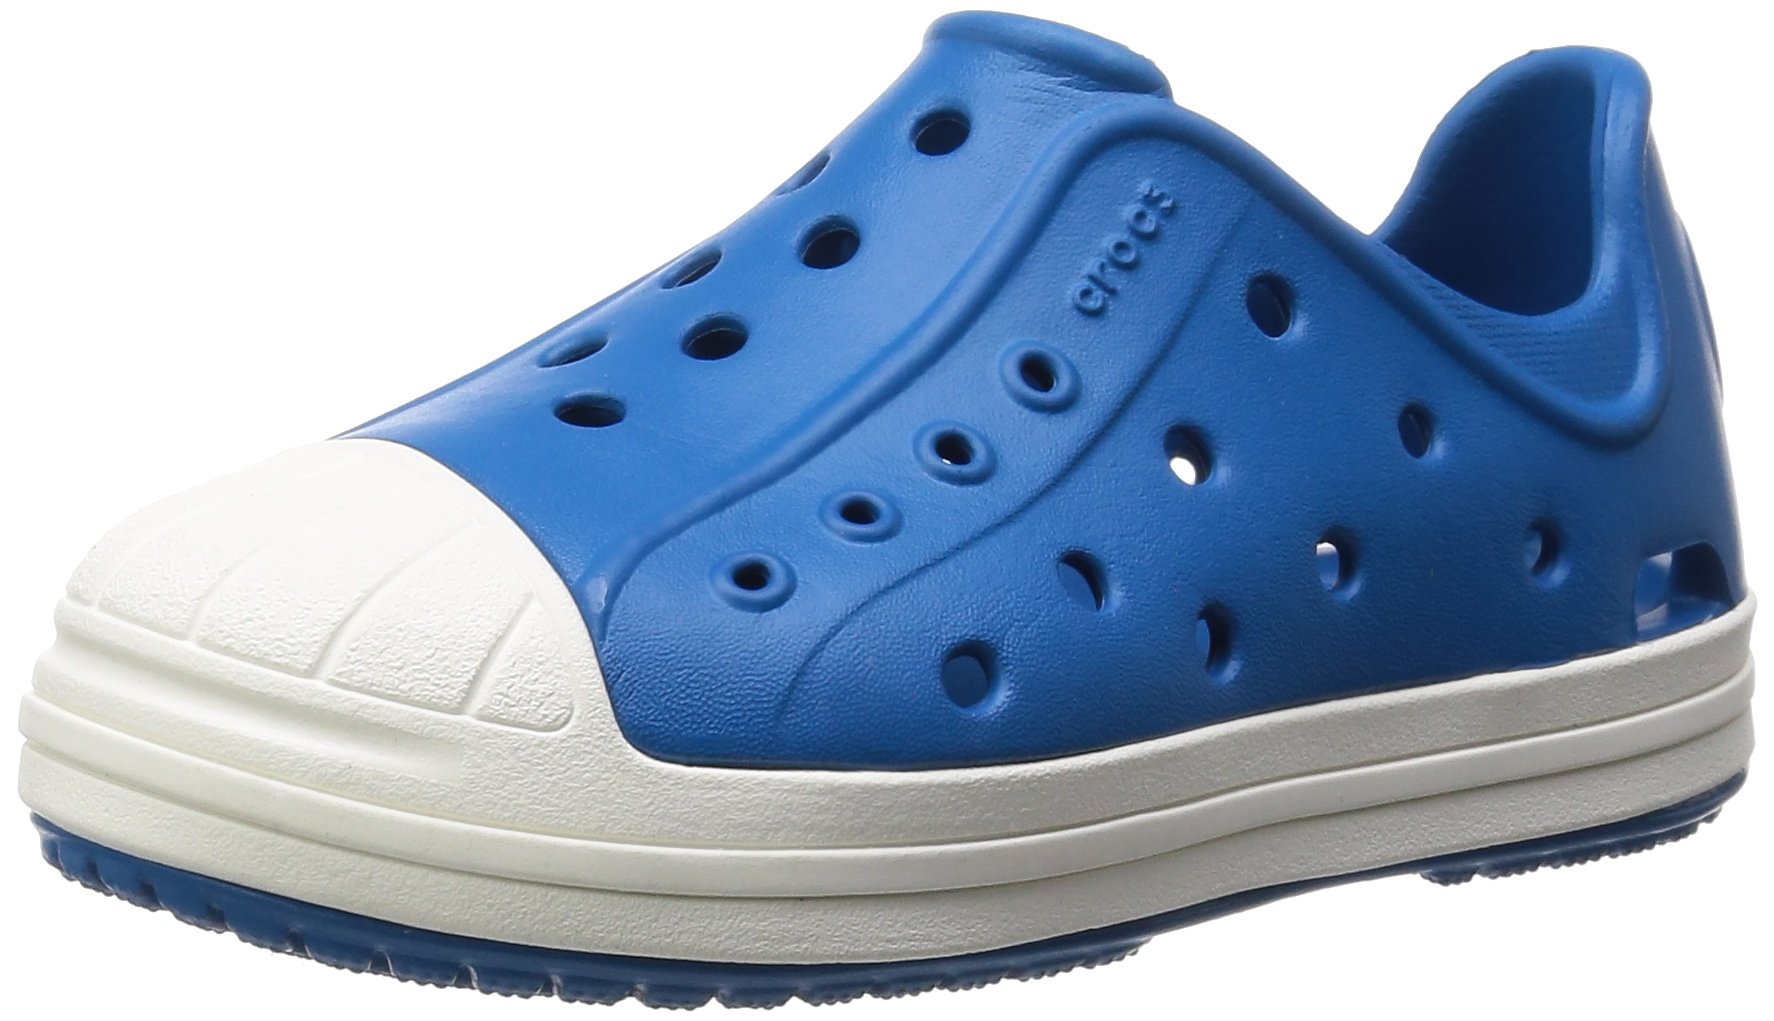 Crocs Bump It K Shoe (Toddler/Little Kid), Ultra Marine/Oyster, 9 M US Toddler by Crocs